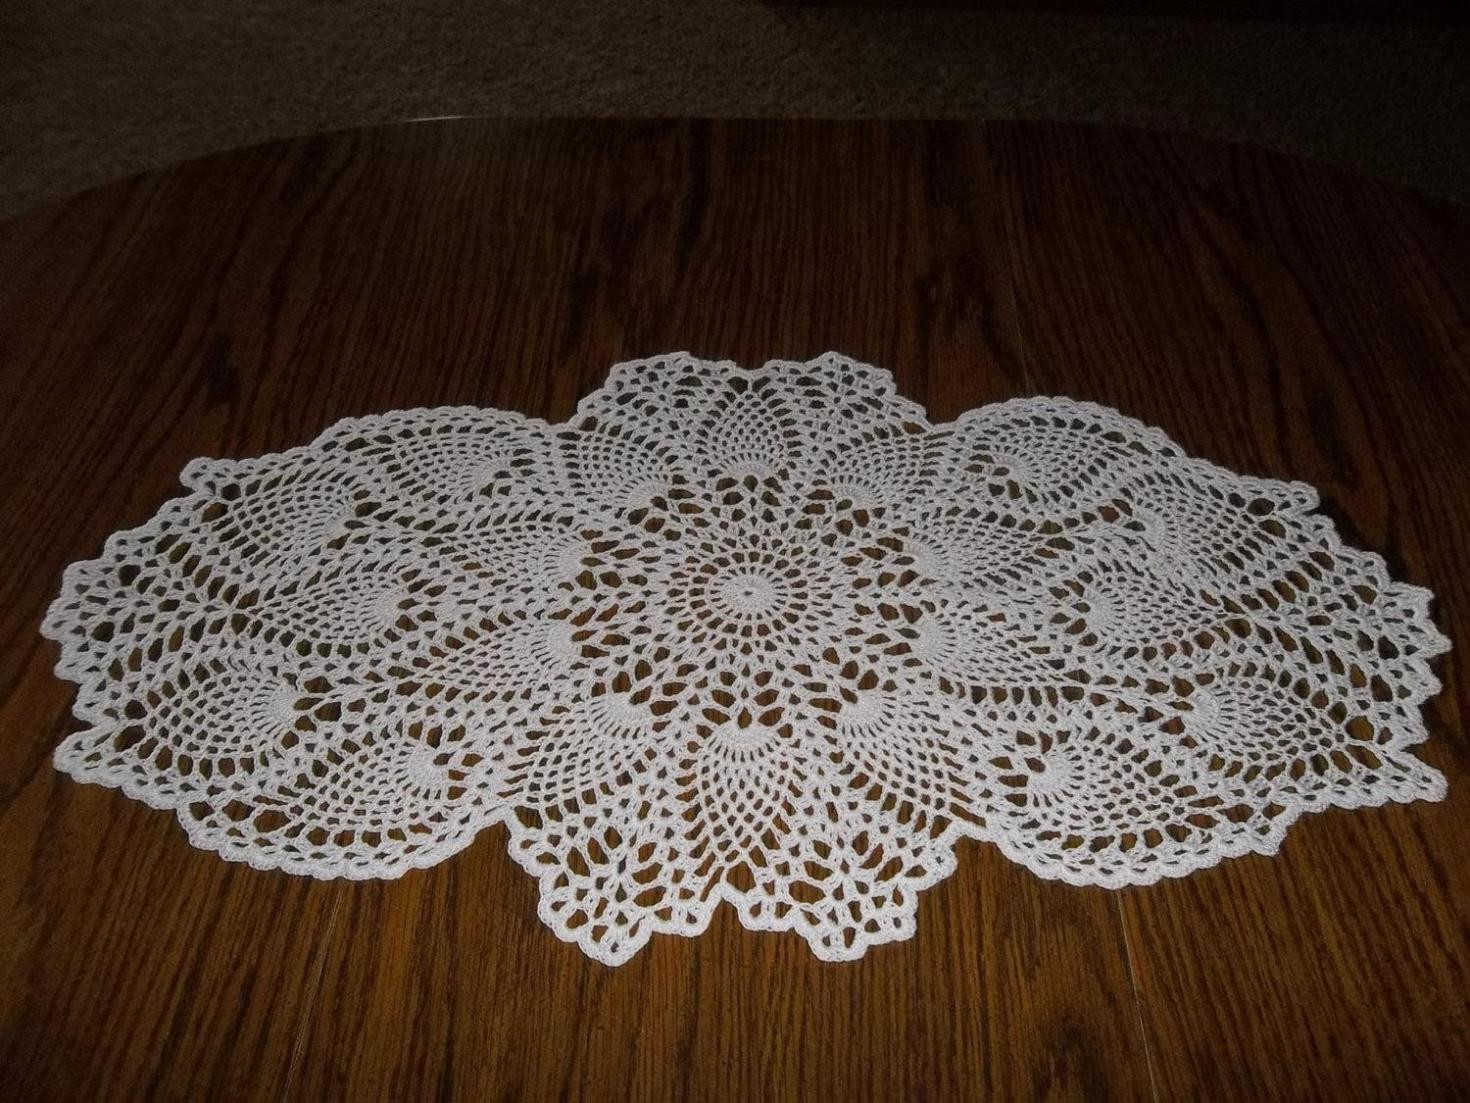 Awesome Just for You 17 Crochet Table Runner Patterns for Crochet Table Runner Of Amazing 46 Images Crochet Table Runner